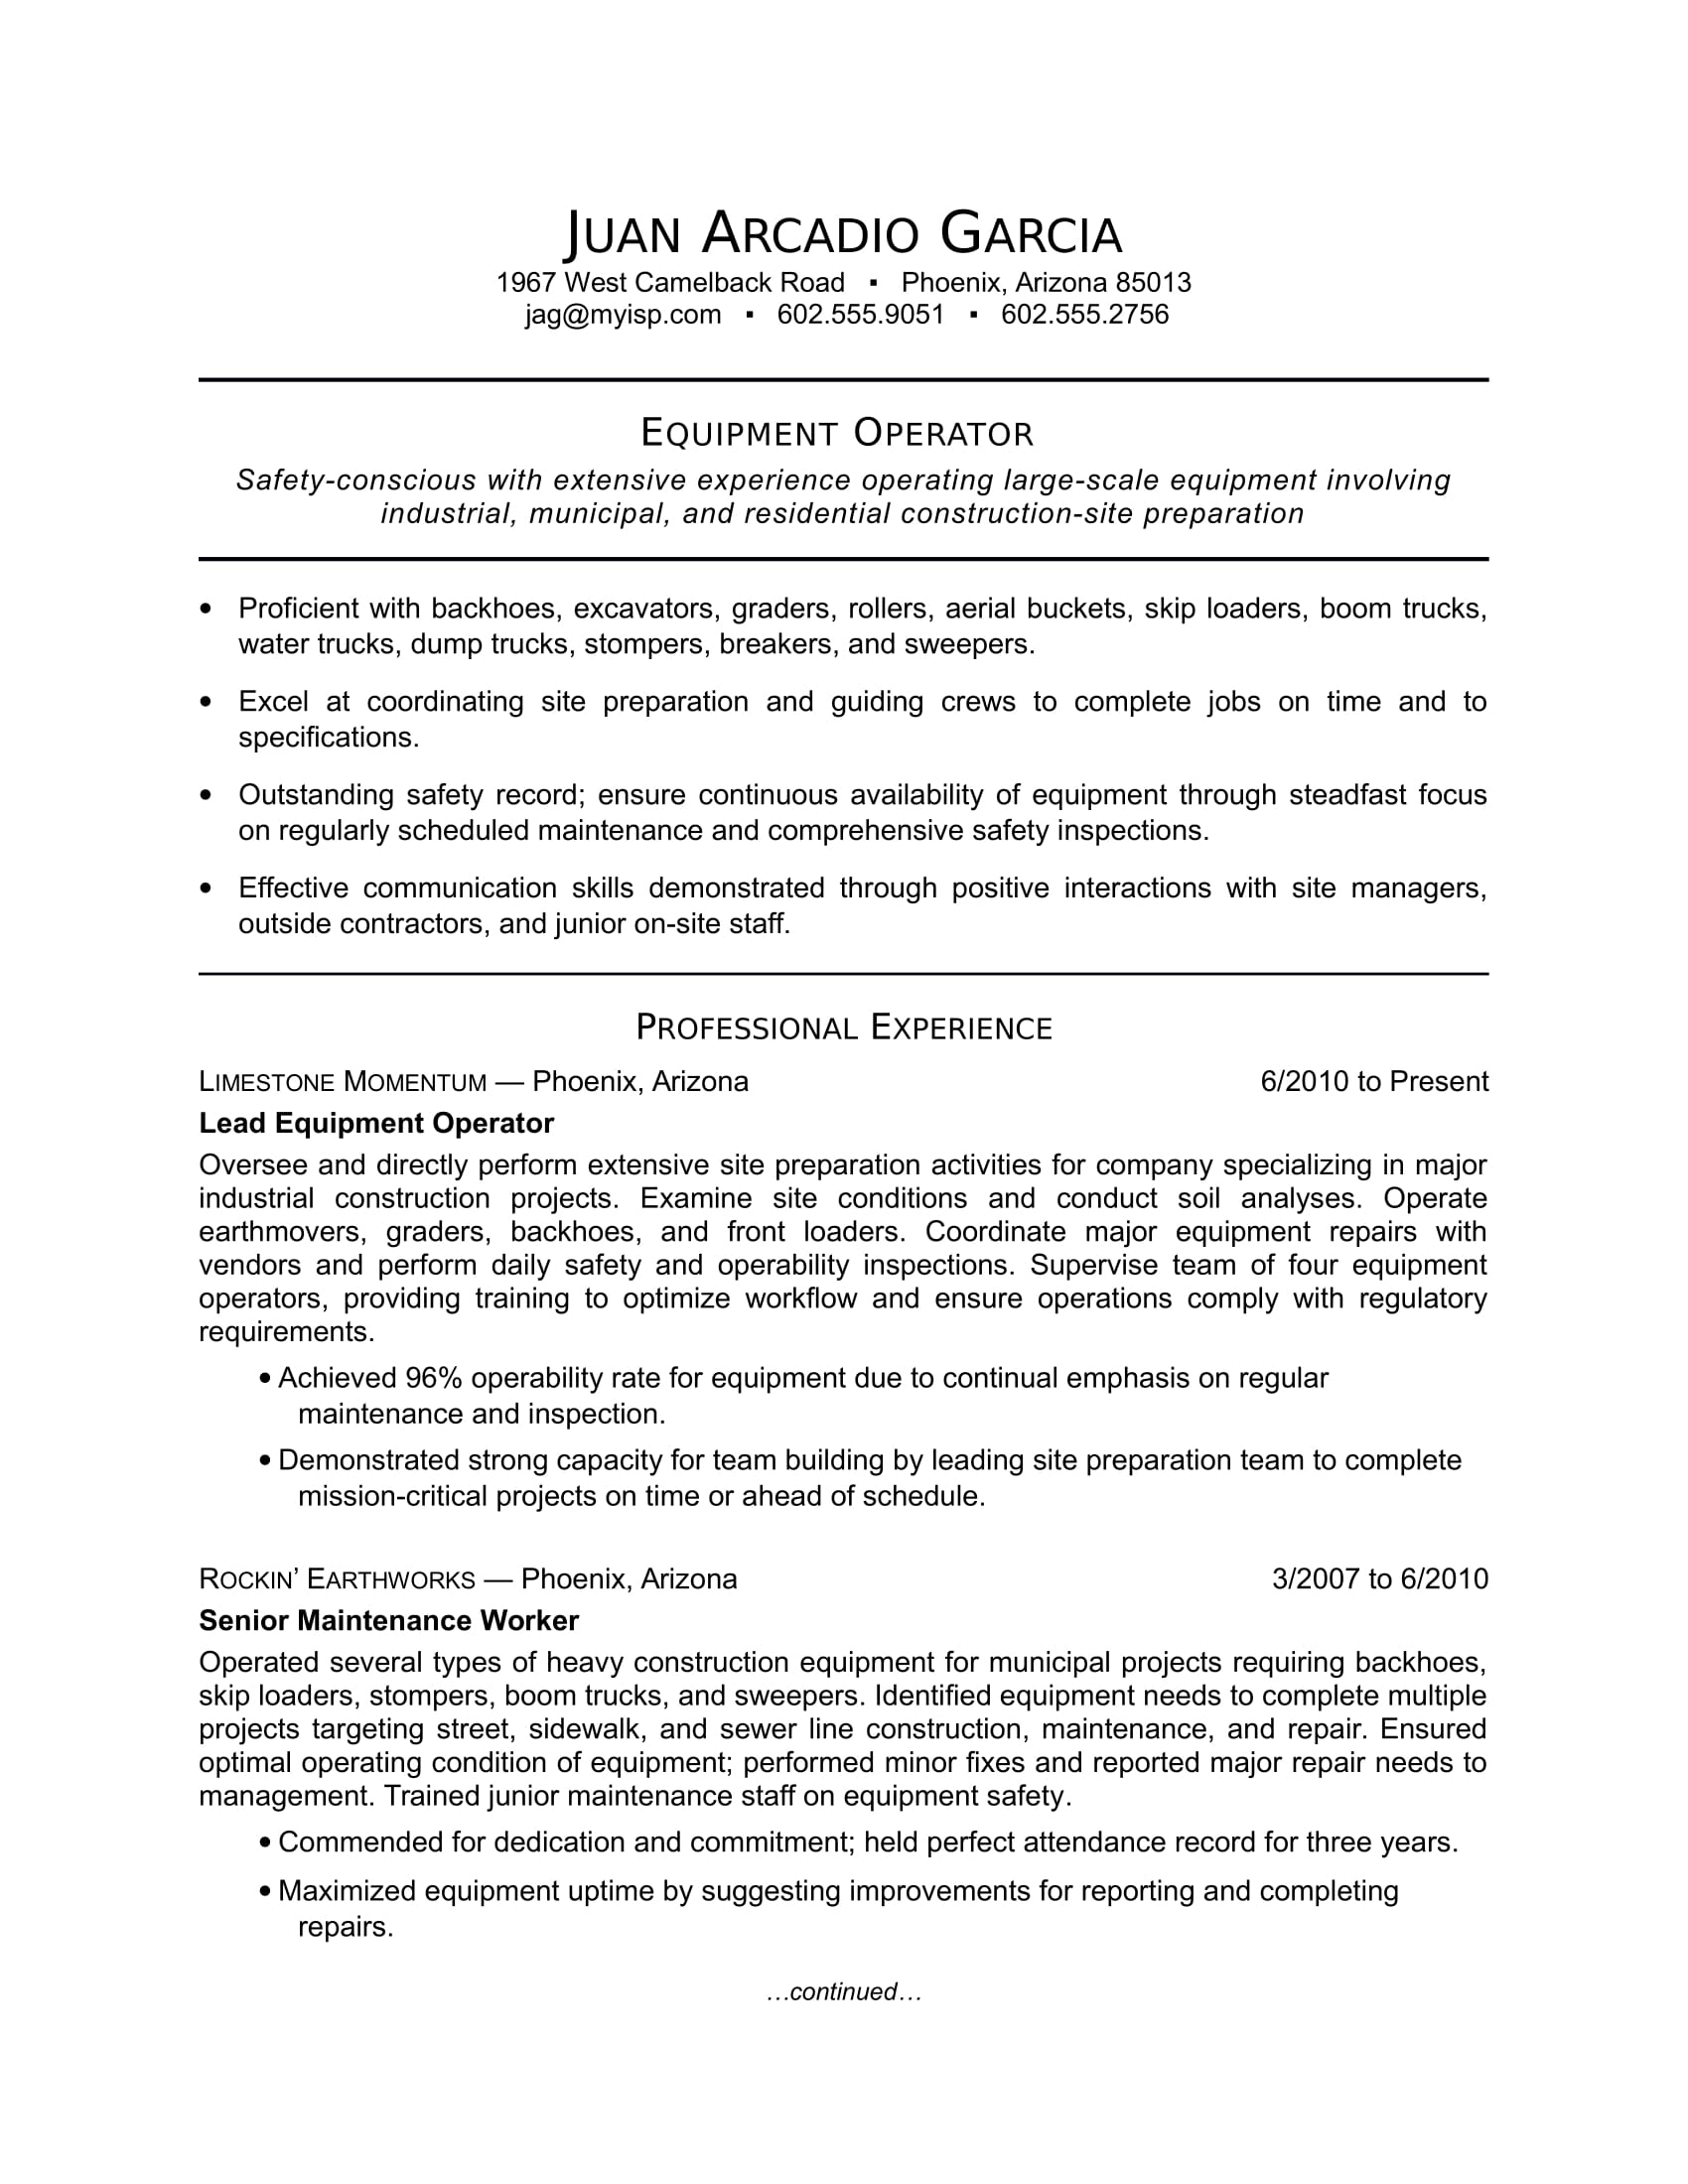 sample resume for an equipment operator - Monster Sample Resume